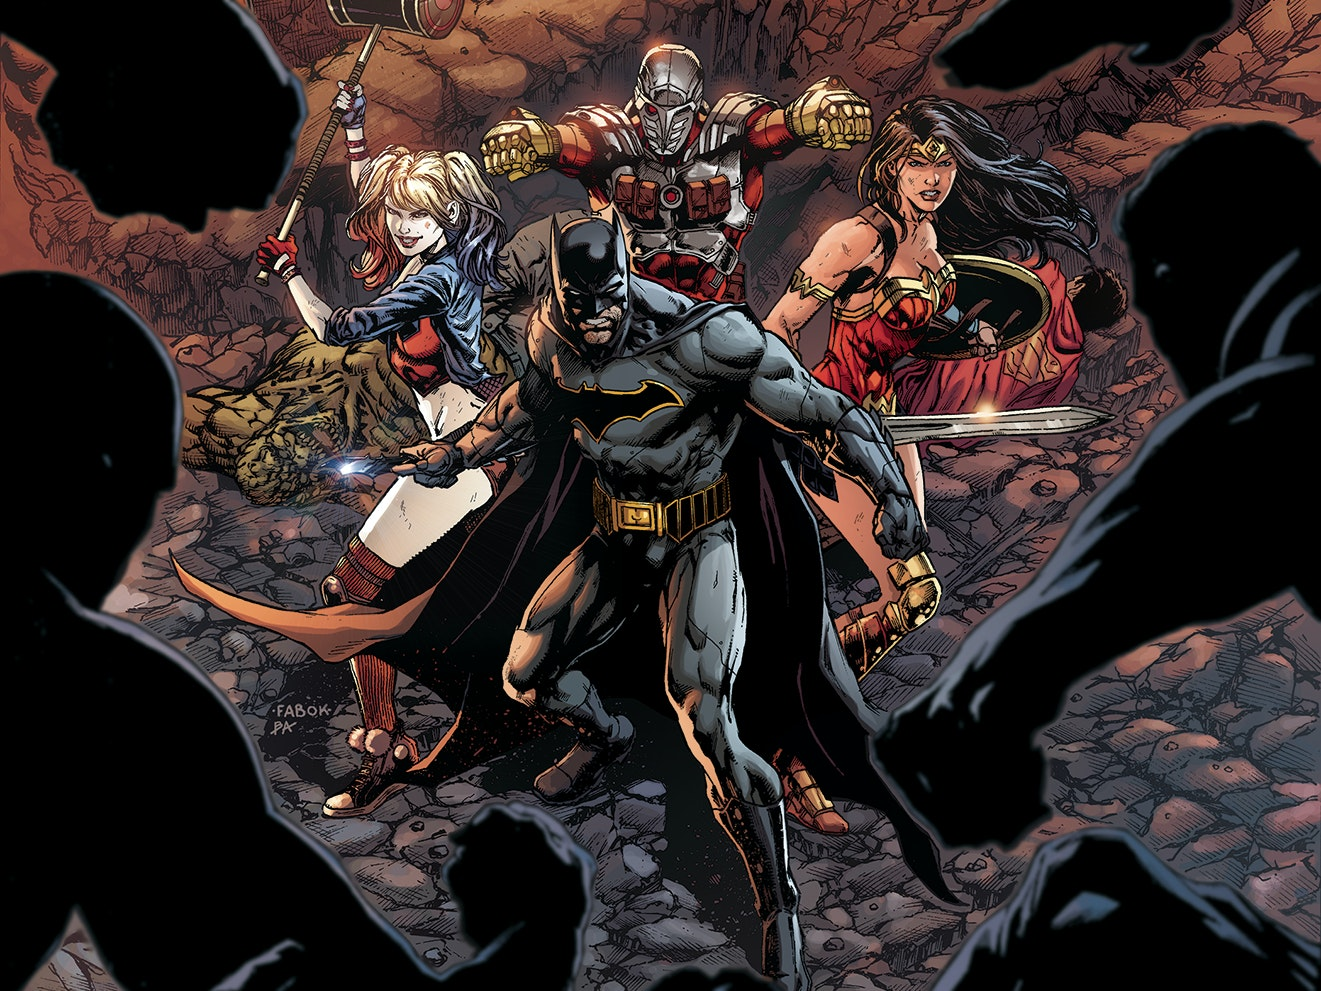 'Justice League vs. Suicide Squad' Is an Epic Team-Up, Not a War